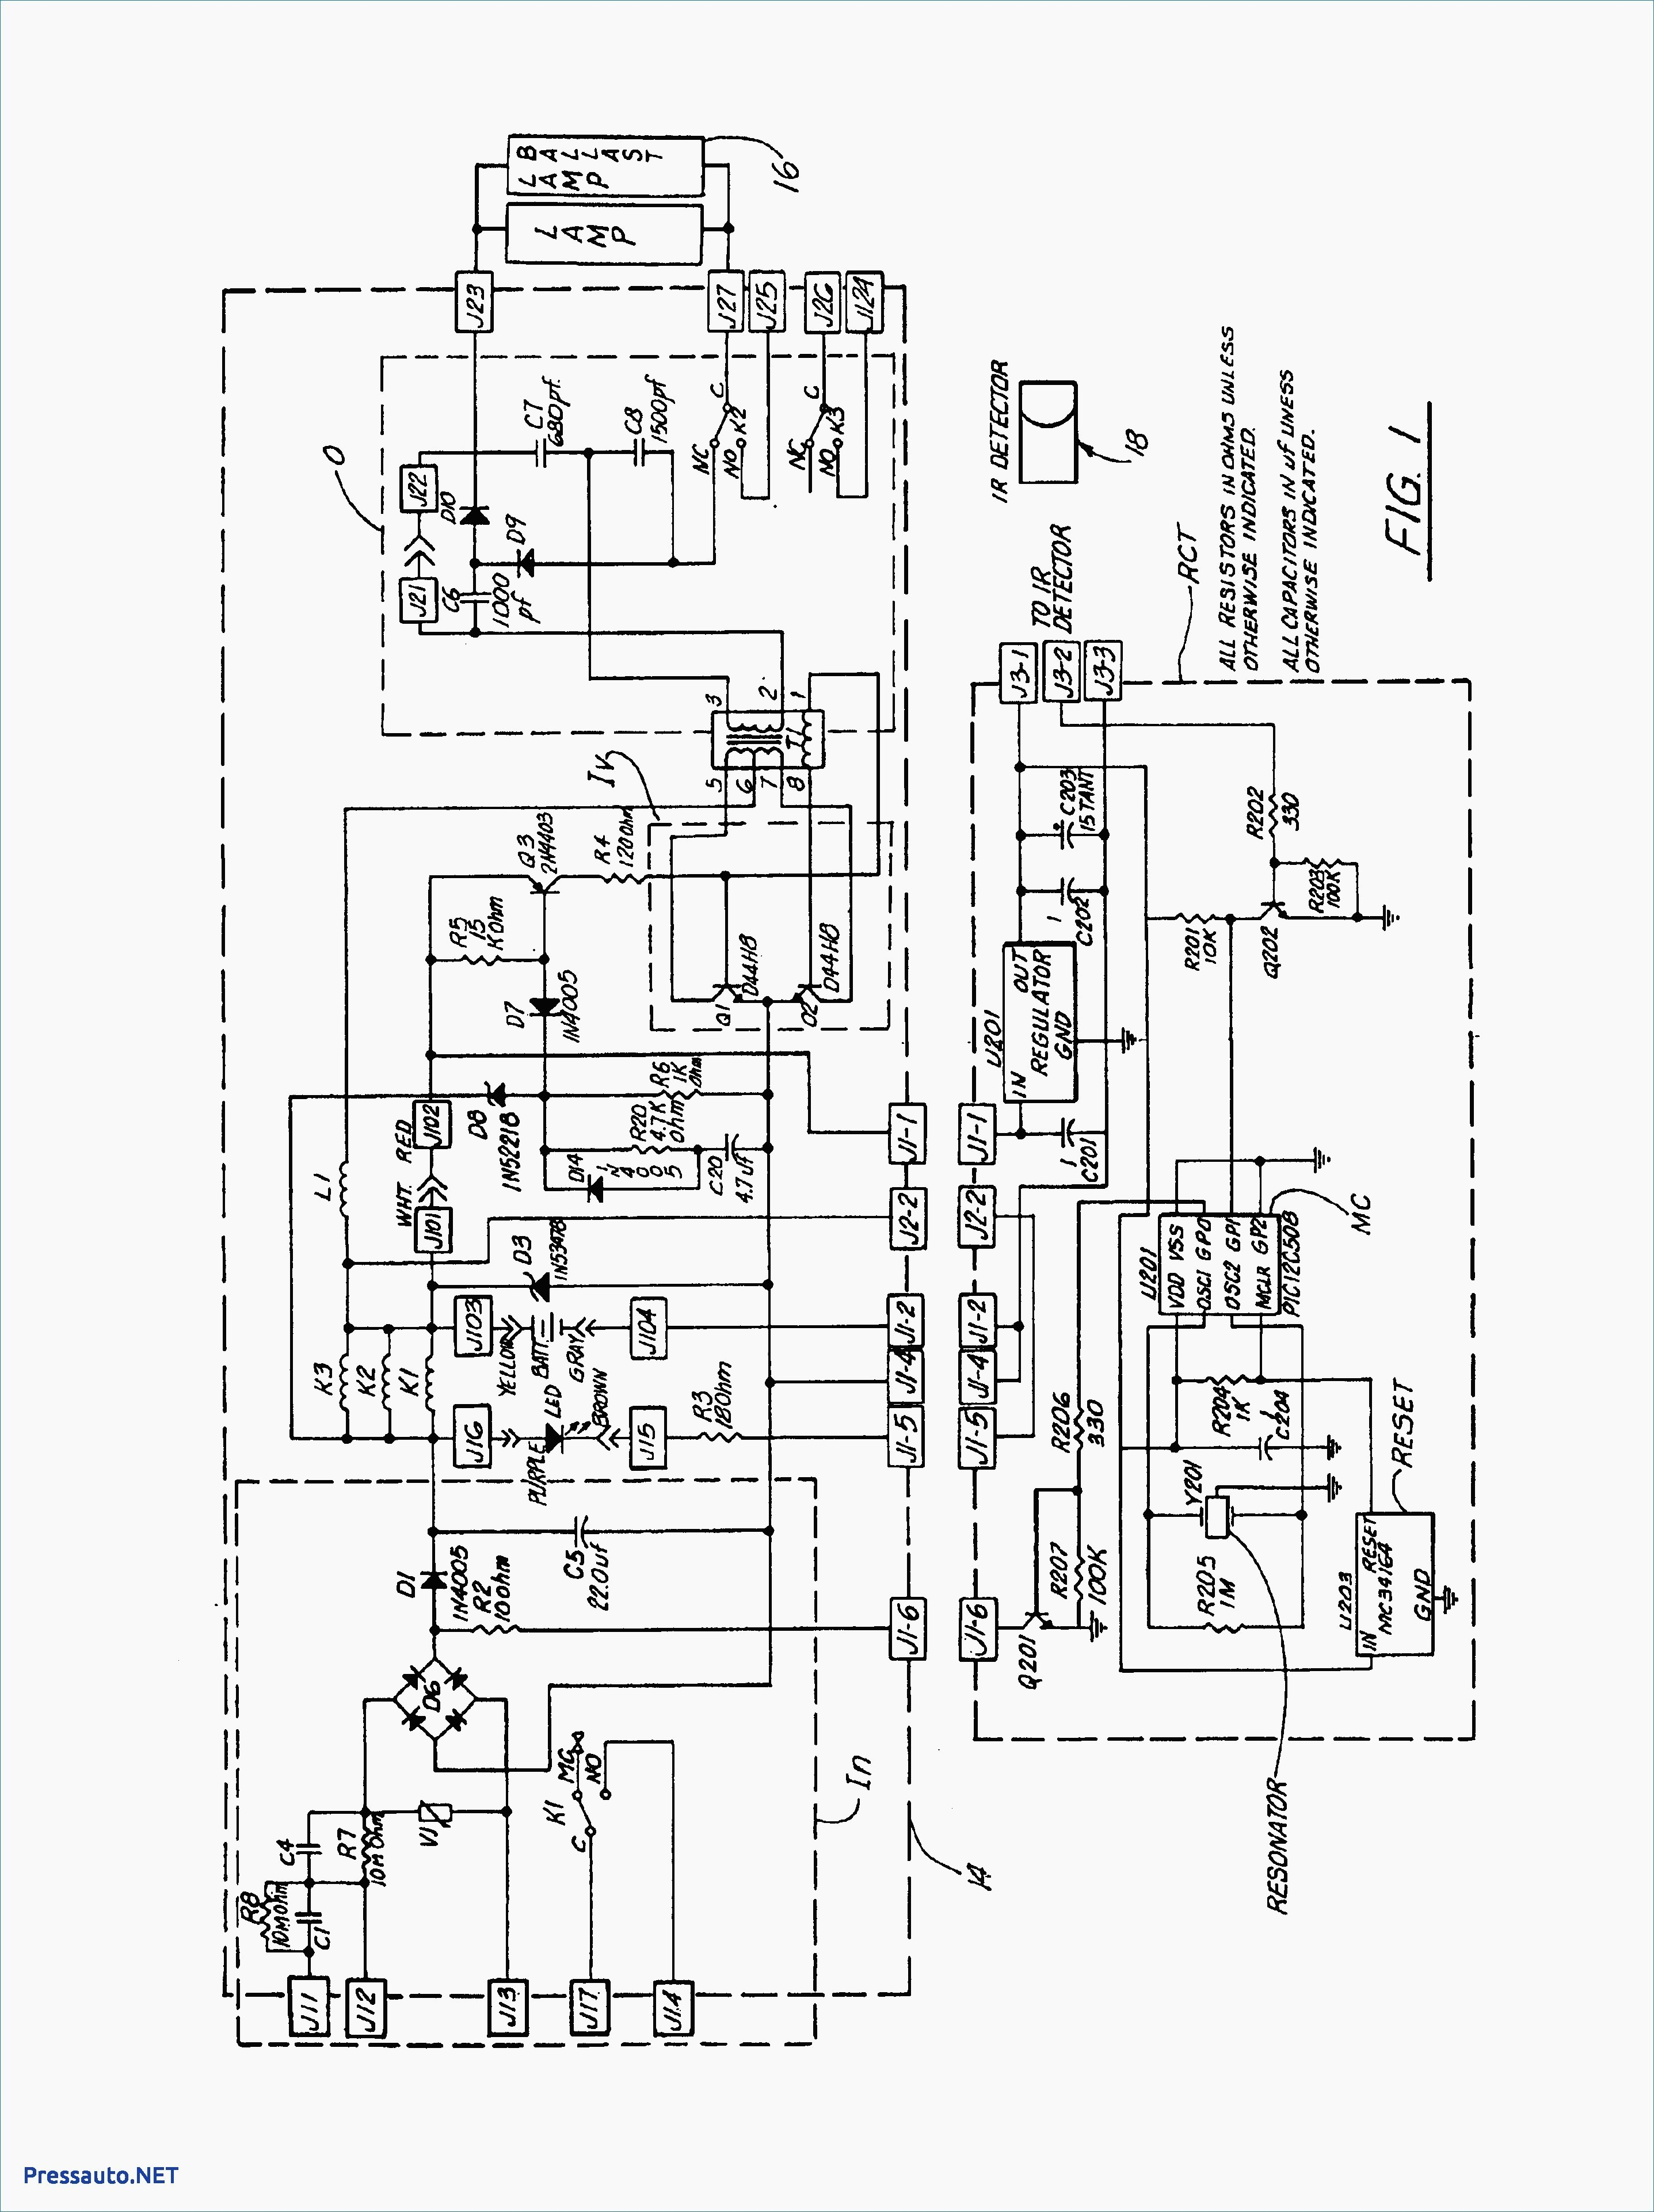 Wiringiagram Symbols Home Building Physical Connections Wires Electrical Circuit Sample Advance Markimming Ballast Best High Pressure Sodium